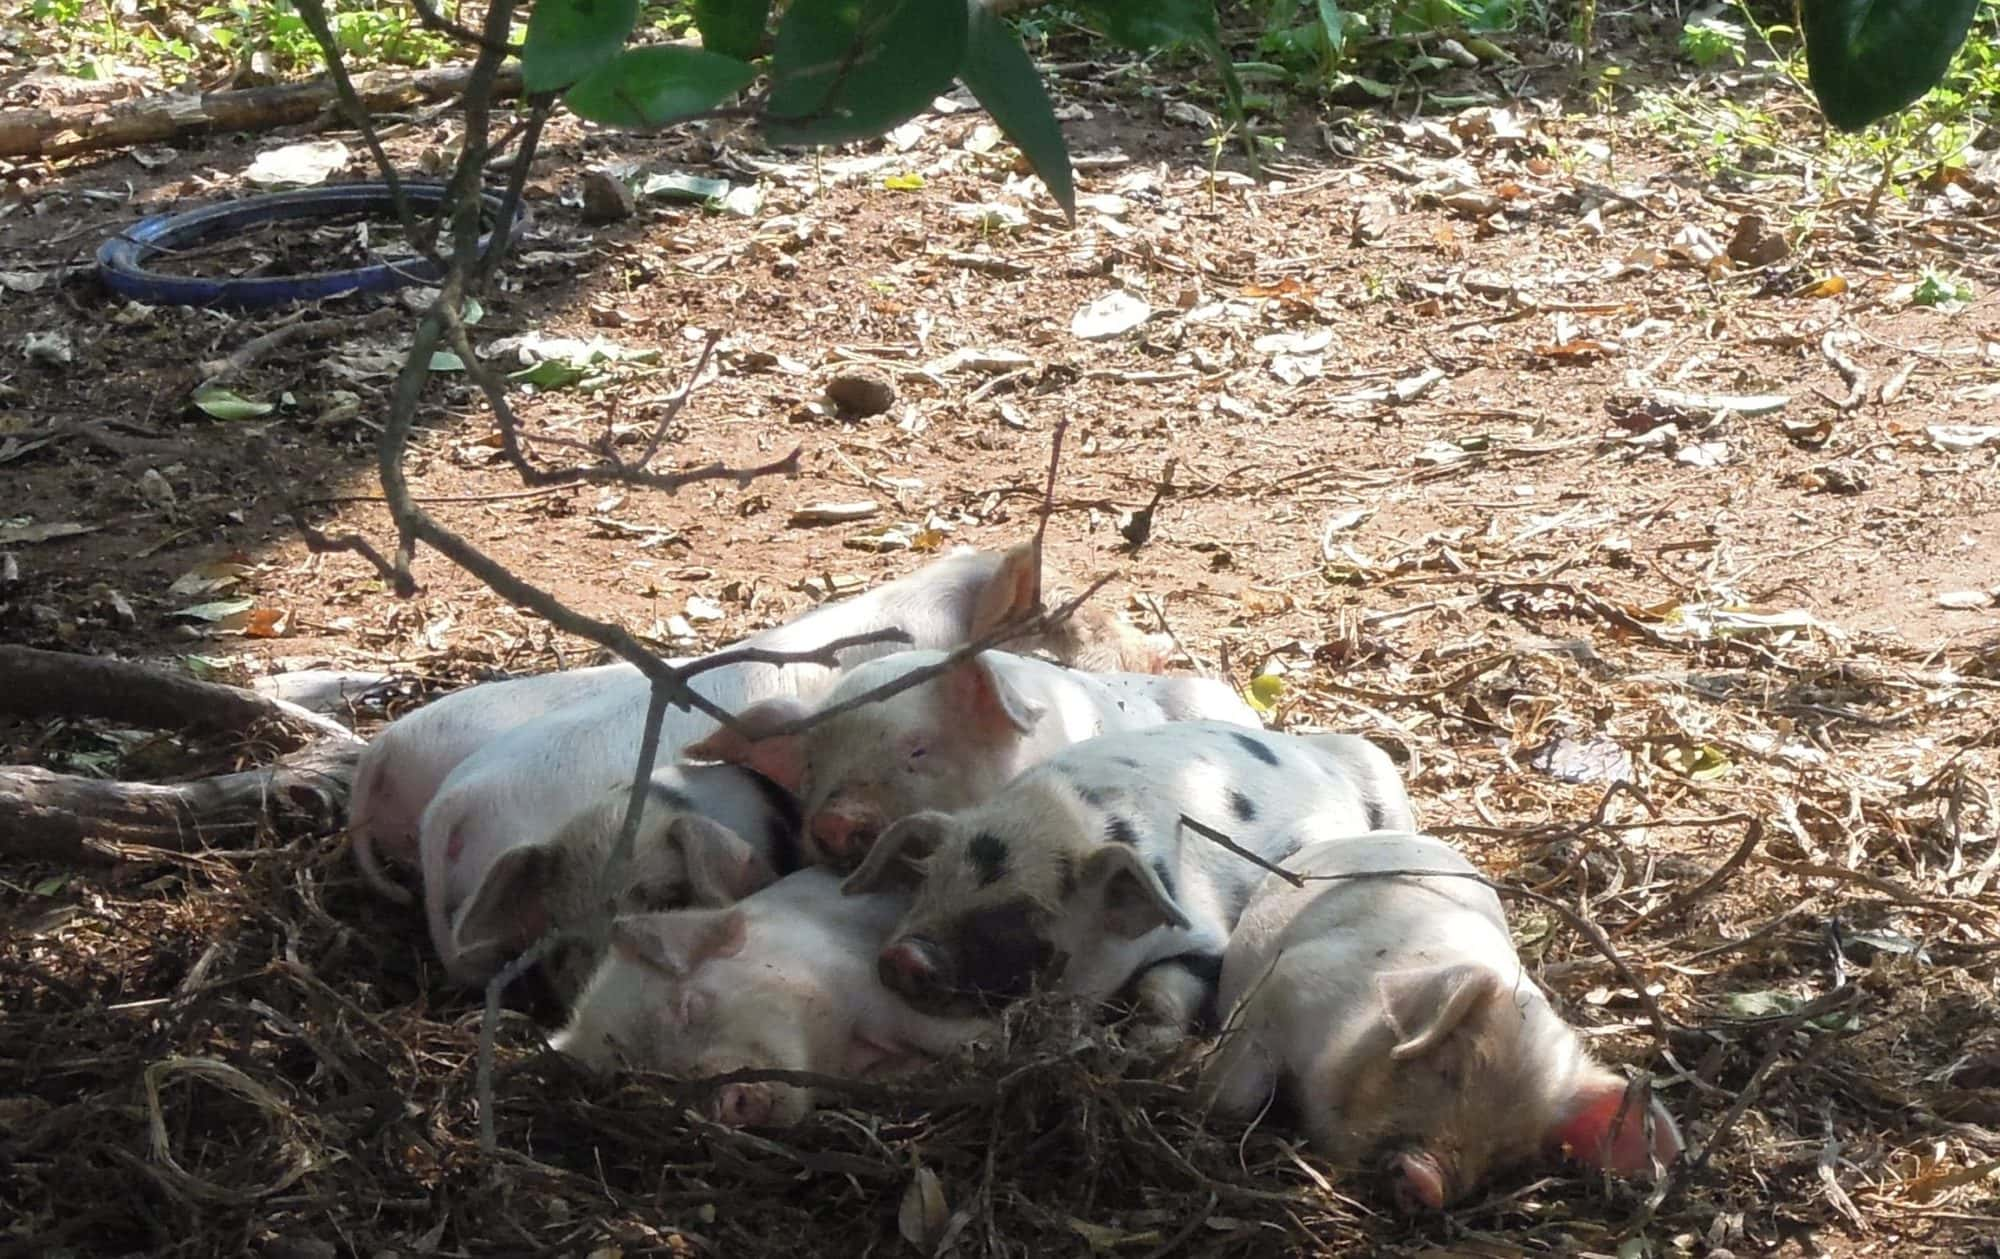 Free ranging smallholder piglets in Kamuli district, Uganda (photo credit: ILRI/Eliza Smith).